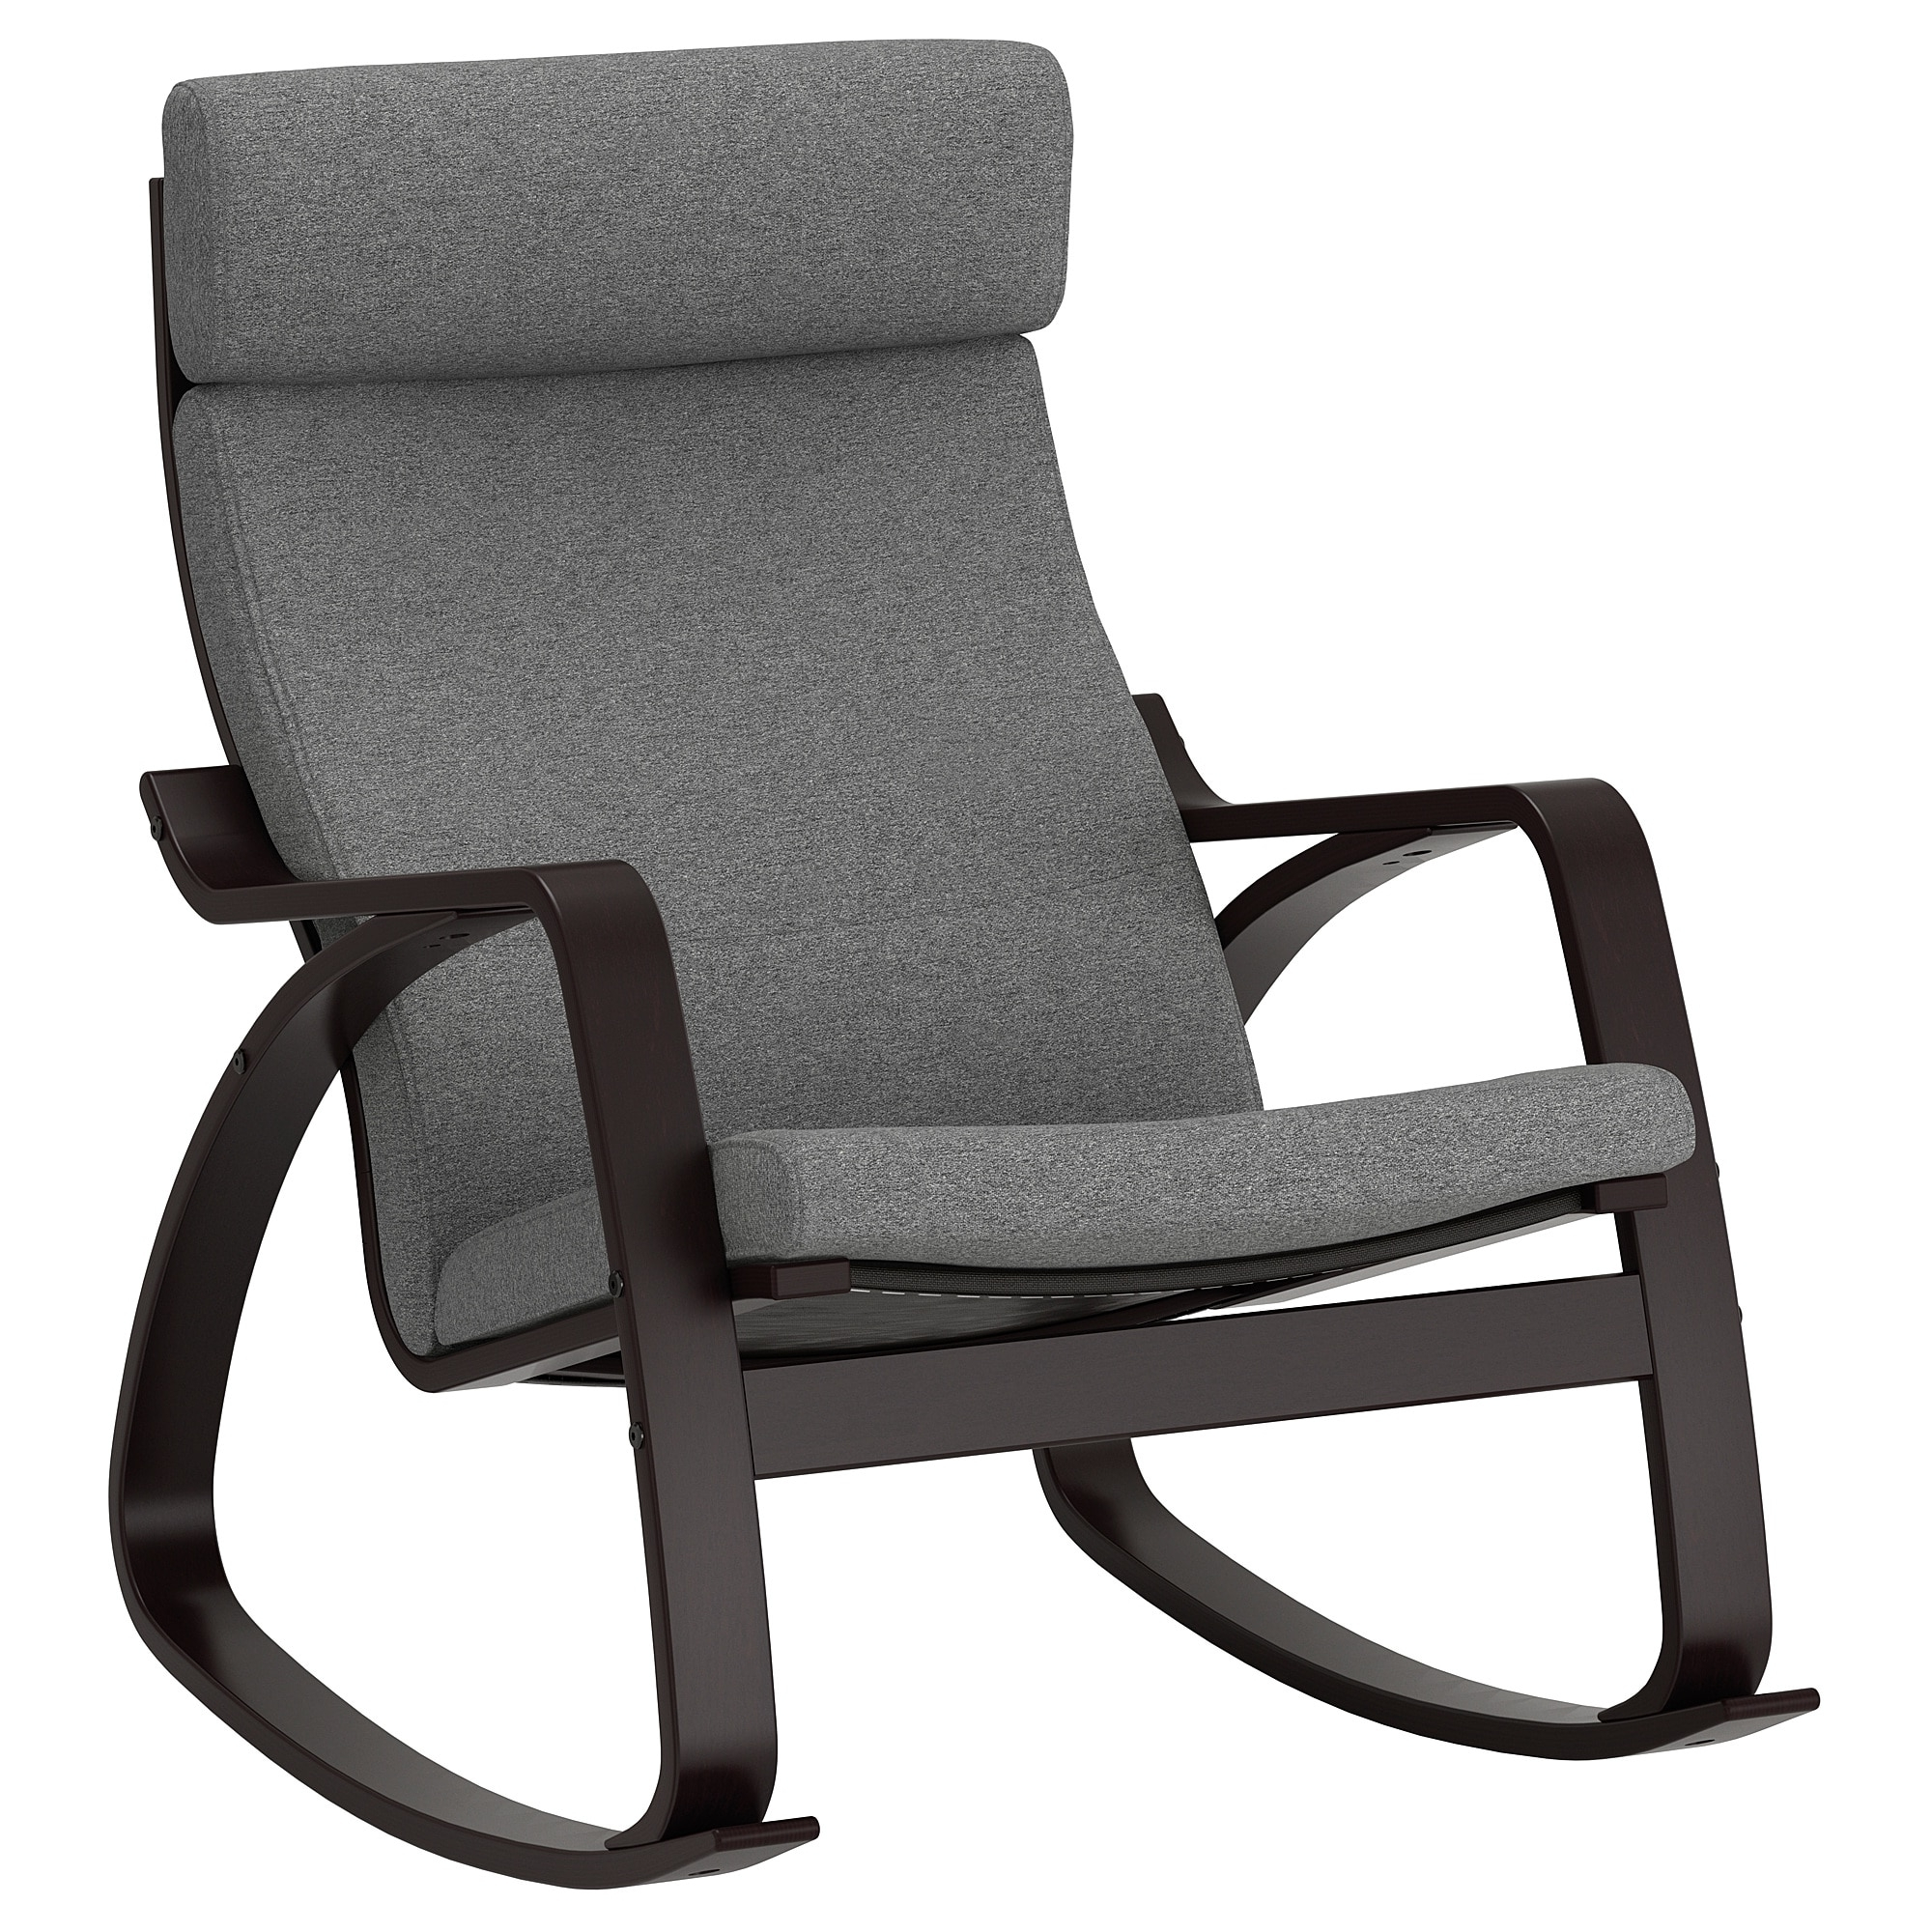 Famous Poäng Rocking Chair Black Brown/lysed Grey – Ikea For Ikea Rocking Chairs (View 4 of 20)